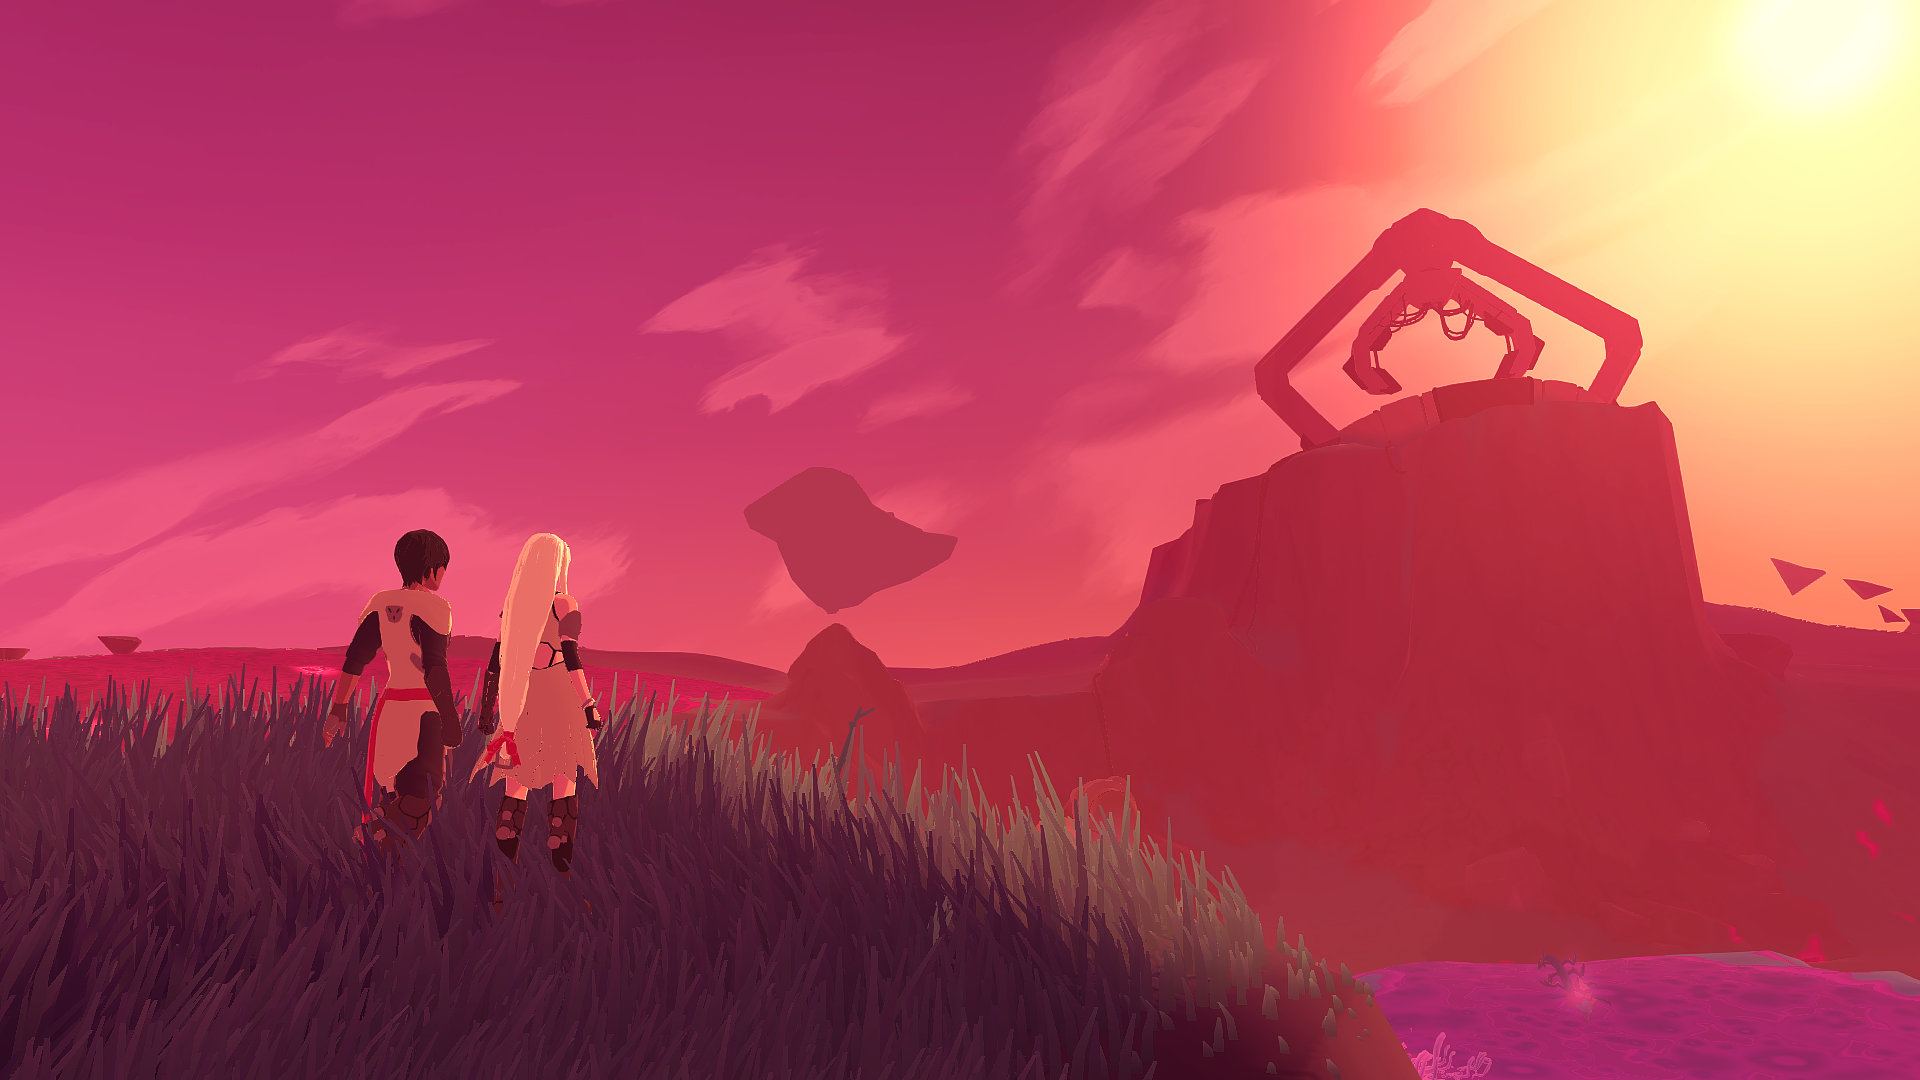 Yu and Kay watch the sunset of Source in Haven